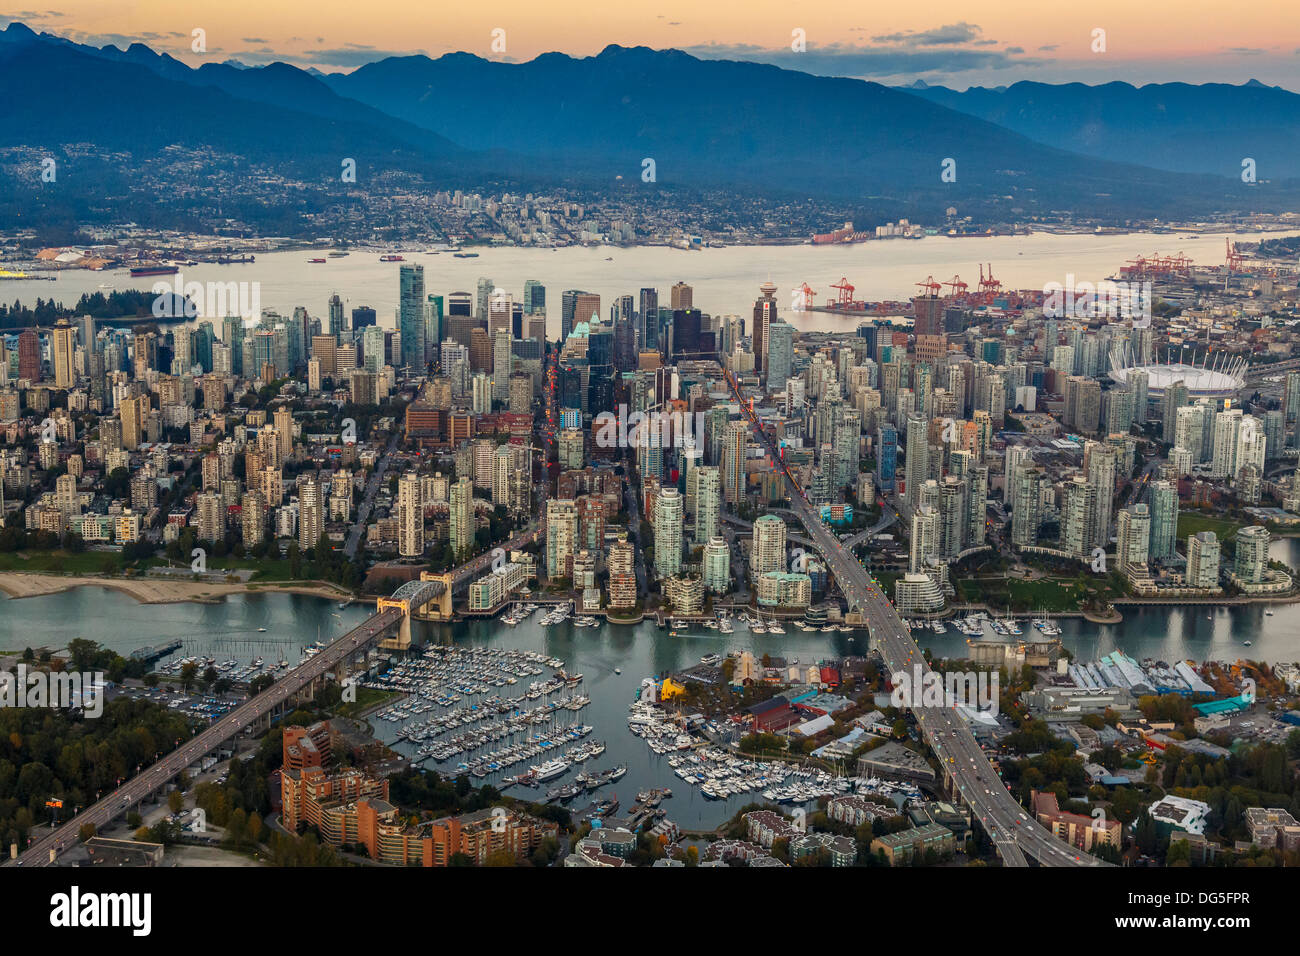 Downtown Vancouver, British Columbia, Canada from the air with Granville Island in the foreground - Stock Image